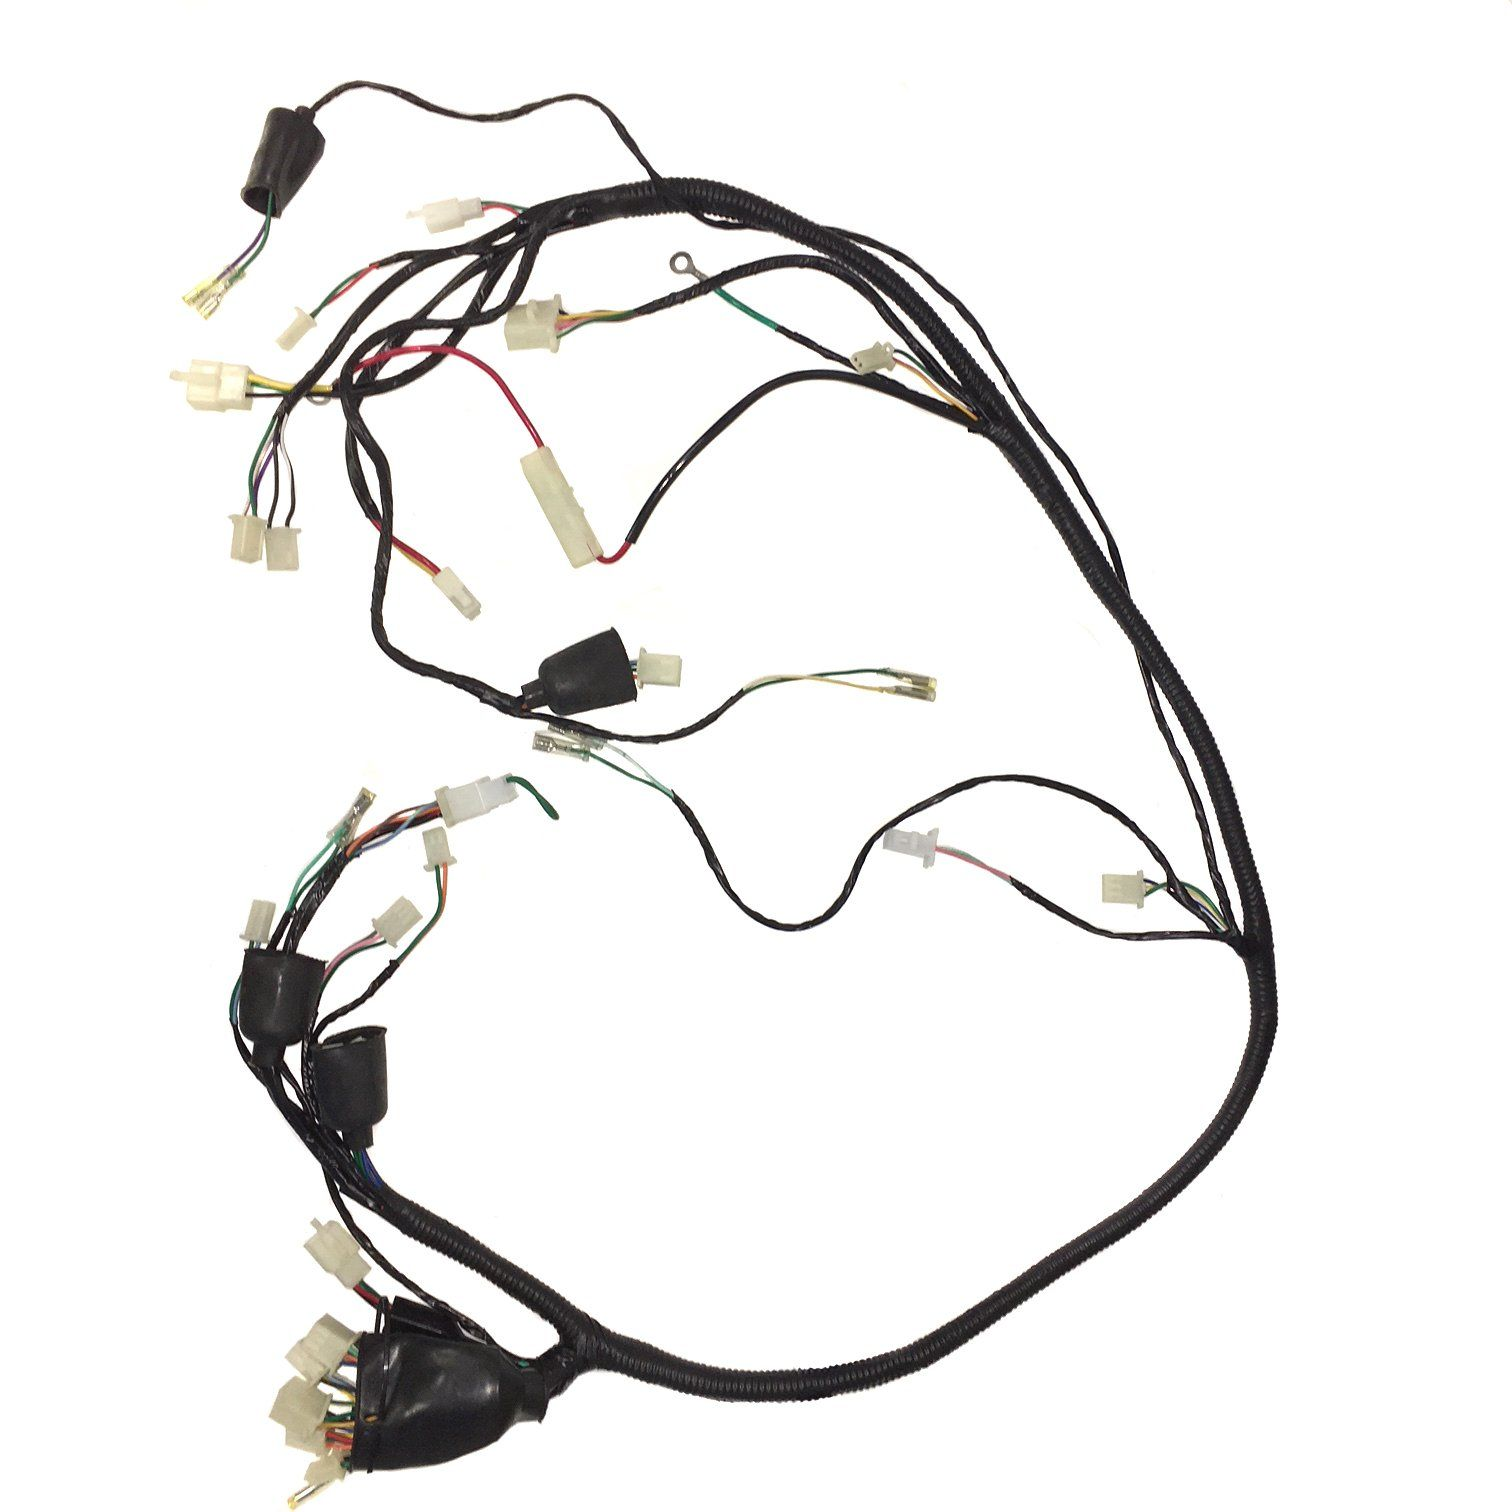 Wiring Harness for Scooter YYZX25019001 250cc Jonway YY250T - VMC Chinese  Parts